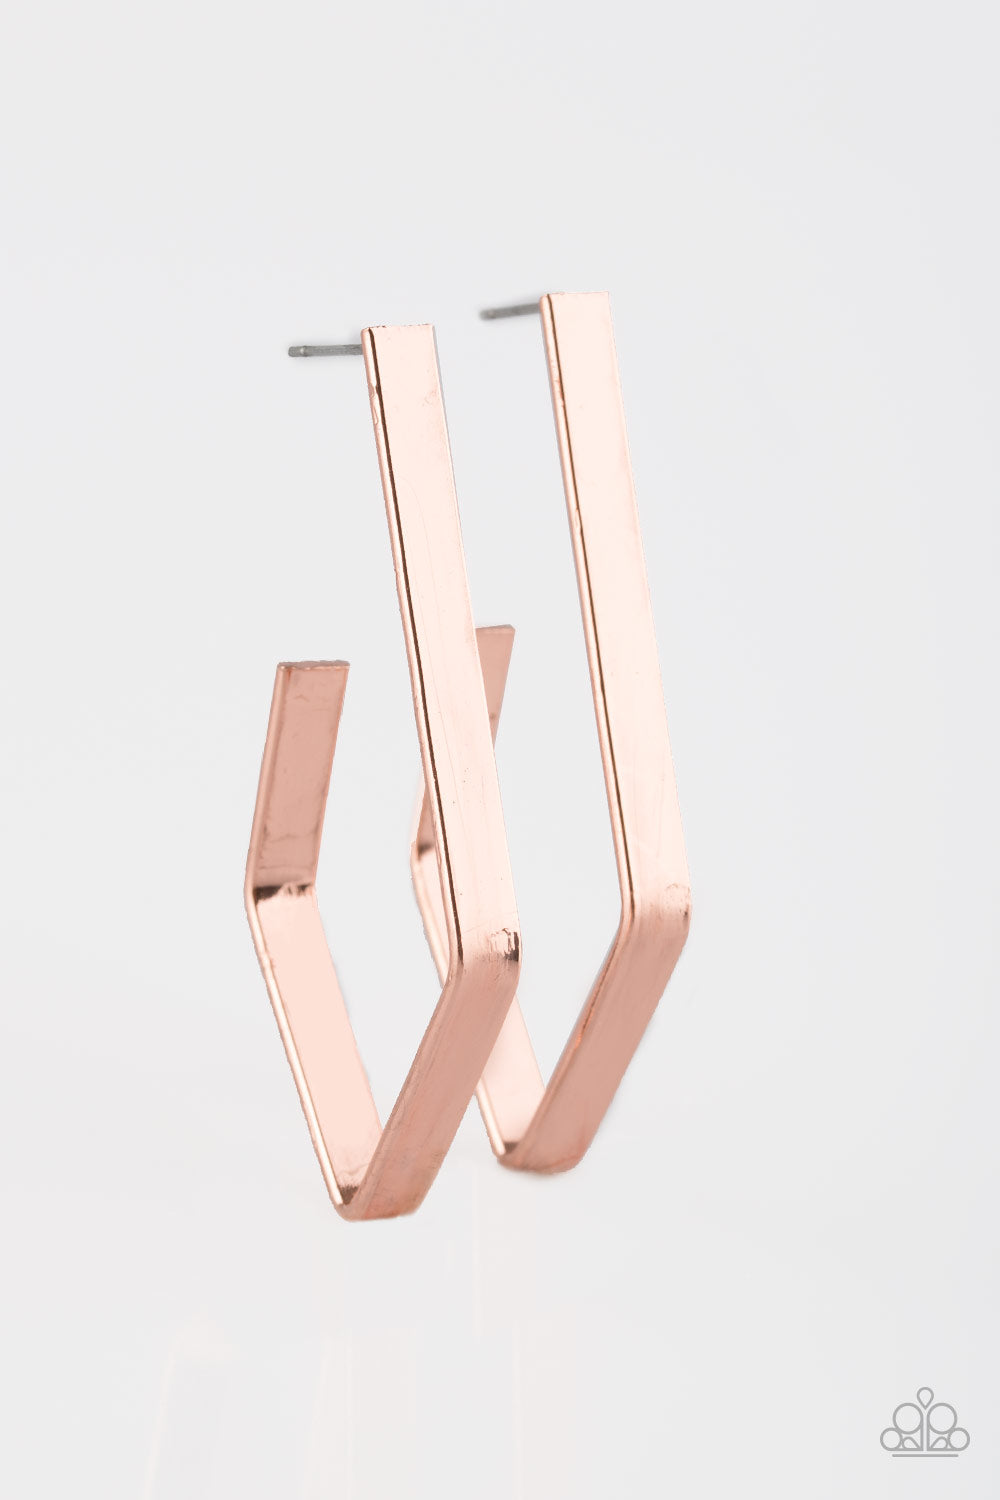 Geo Grand - Copper Earrings - The Paparazzi Fox